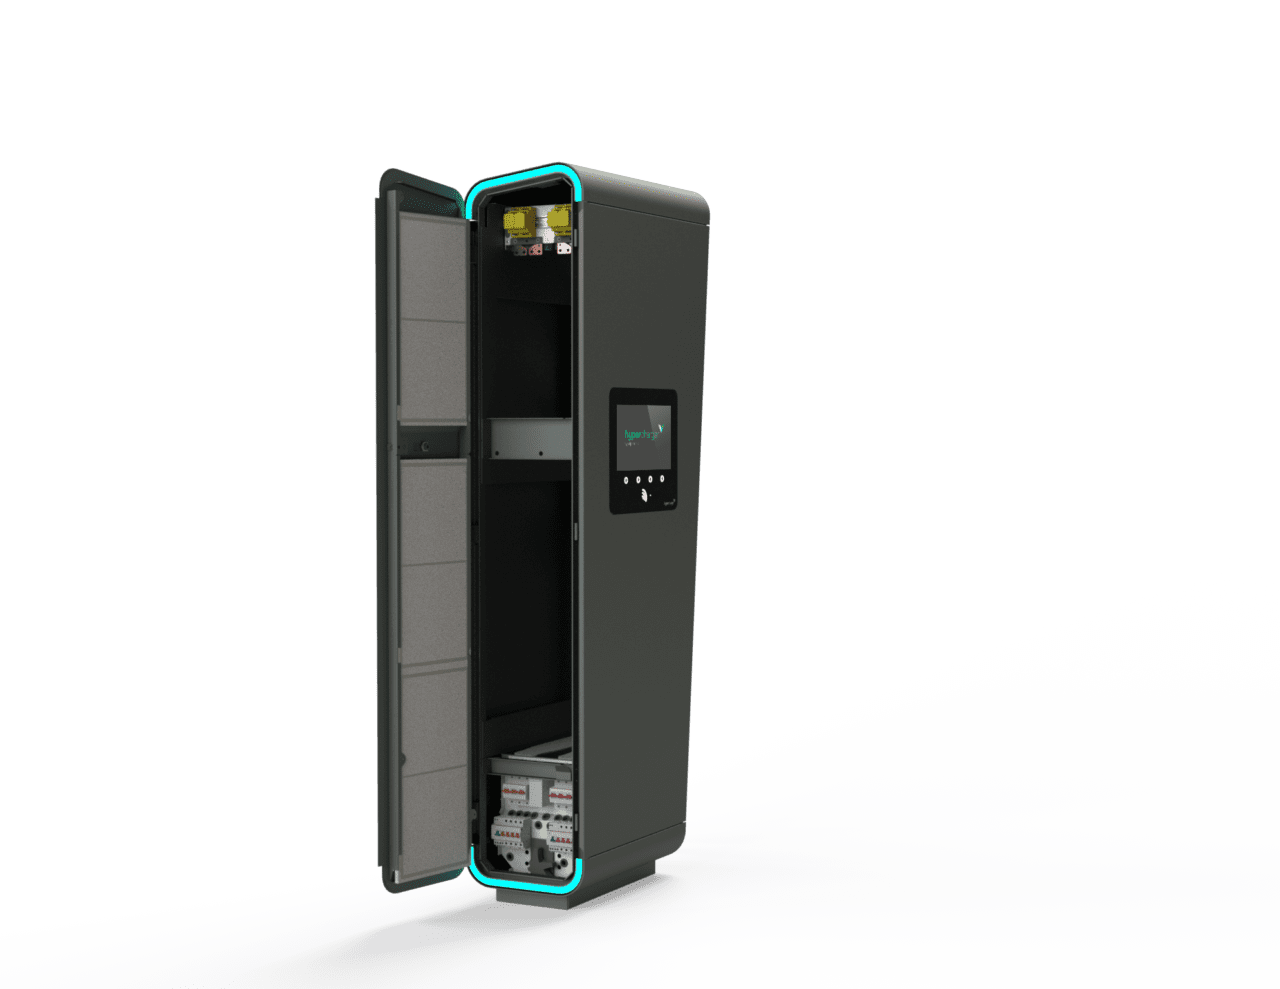 Snellader HYC 150 0 laadstations